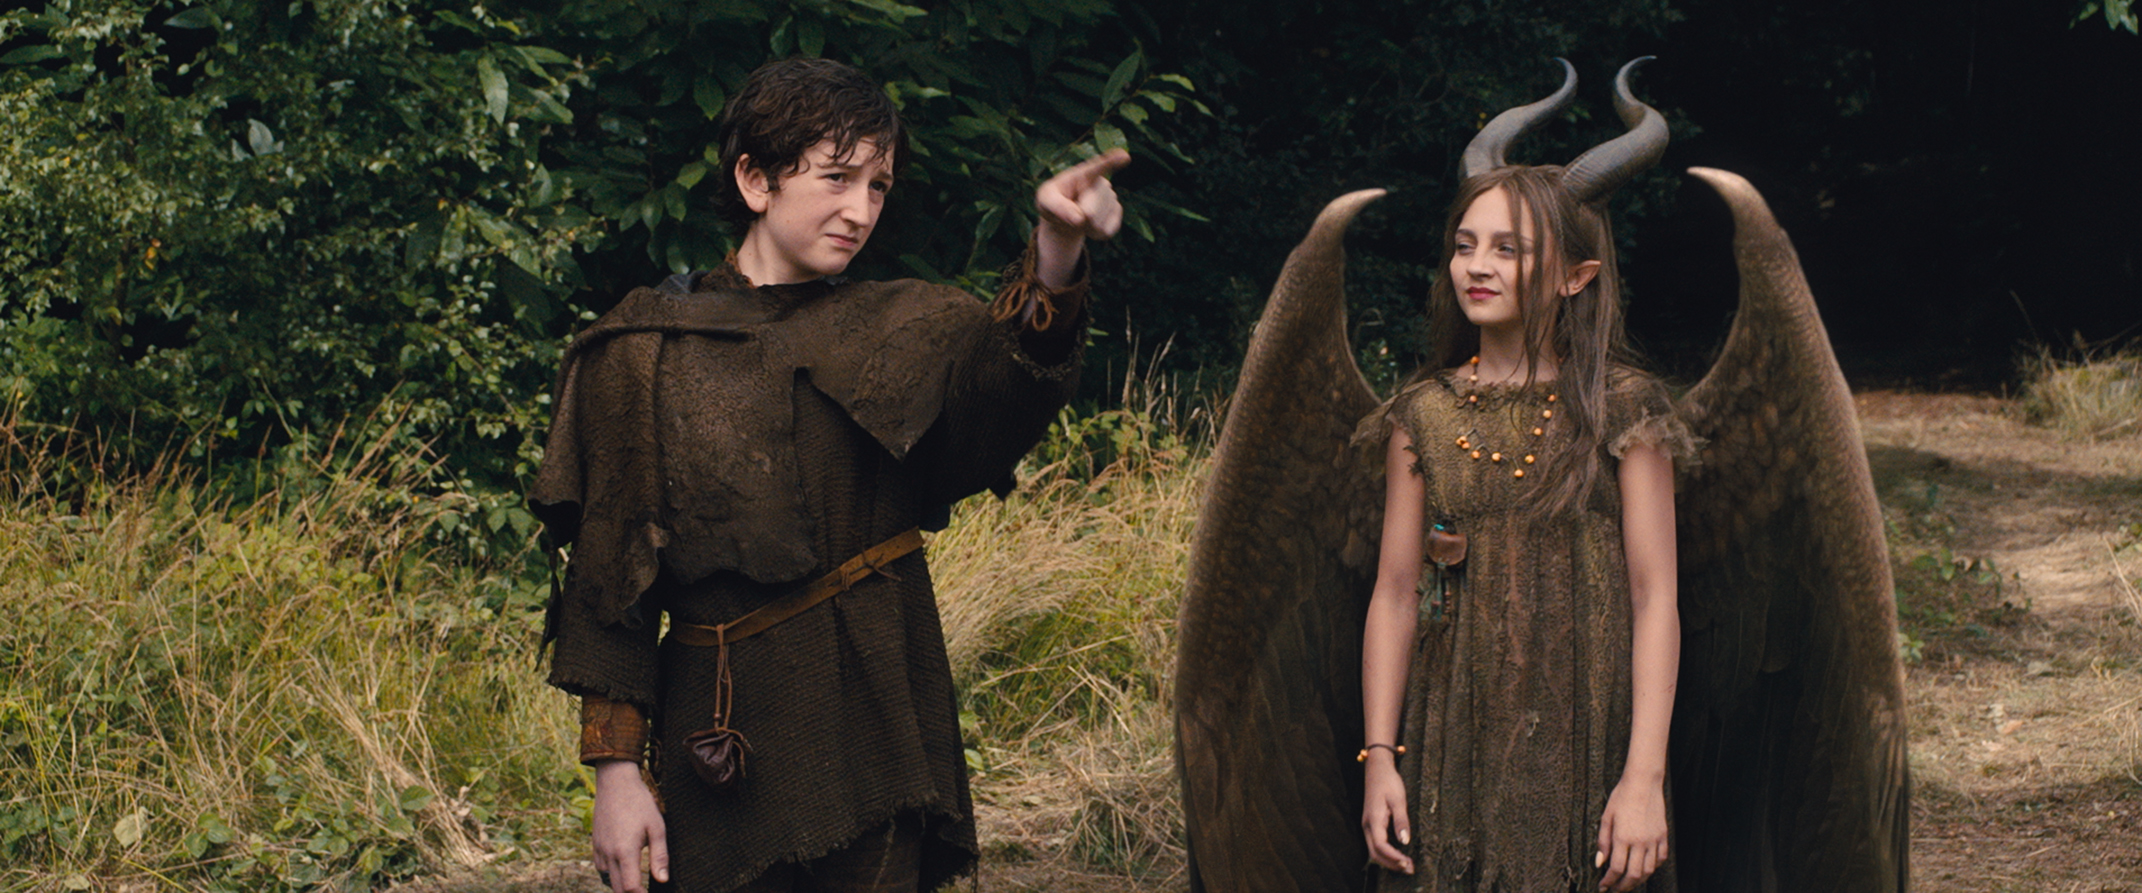 Isobelle Molloy as Young Maleficent with Michael Higgins as Young Stefan picture image